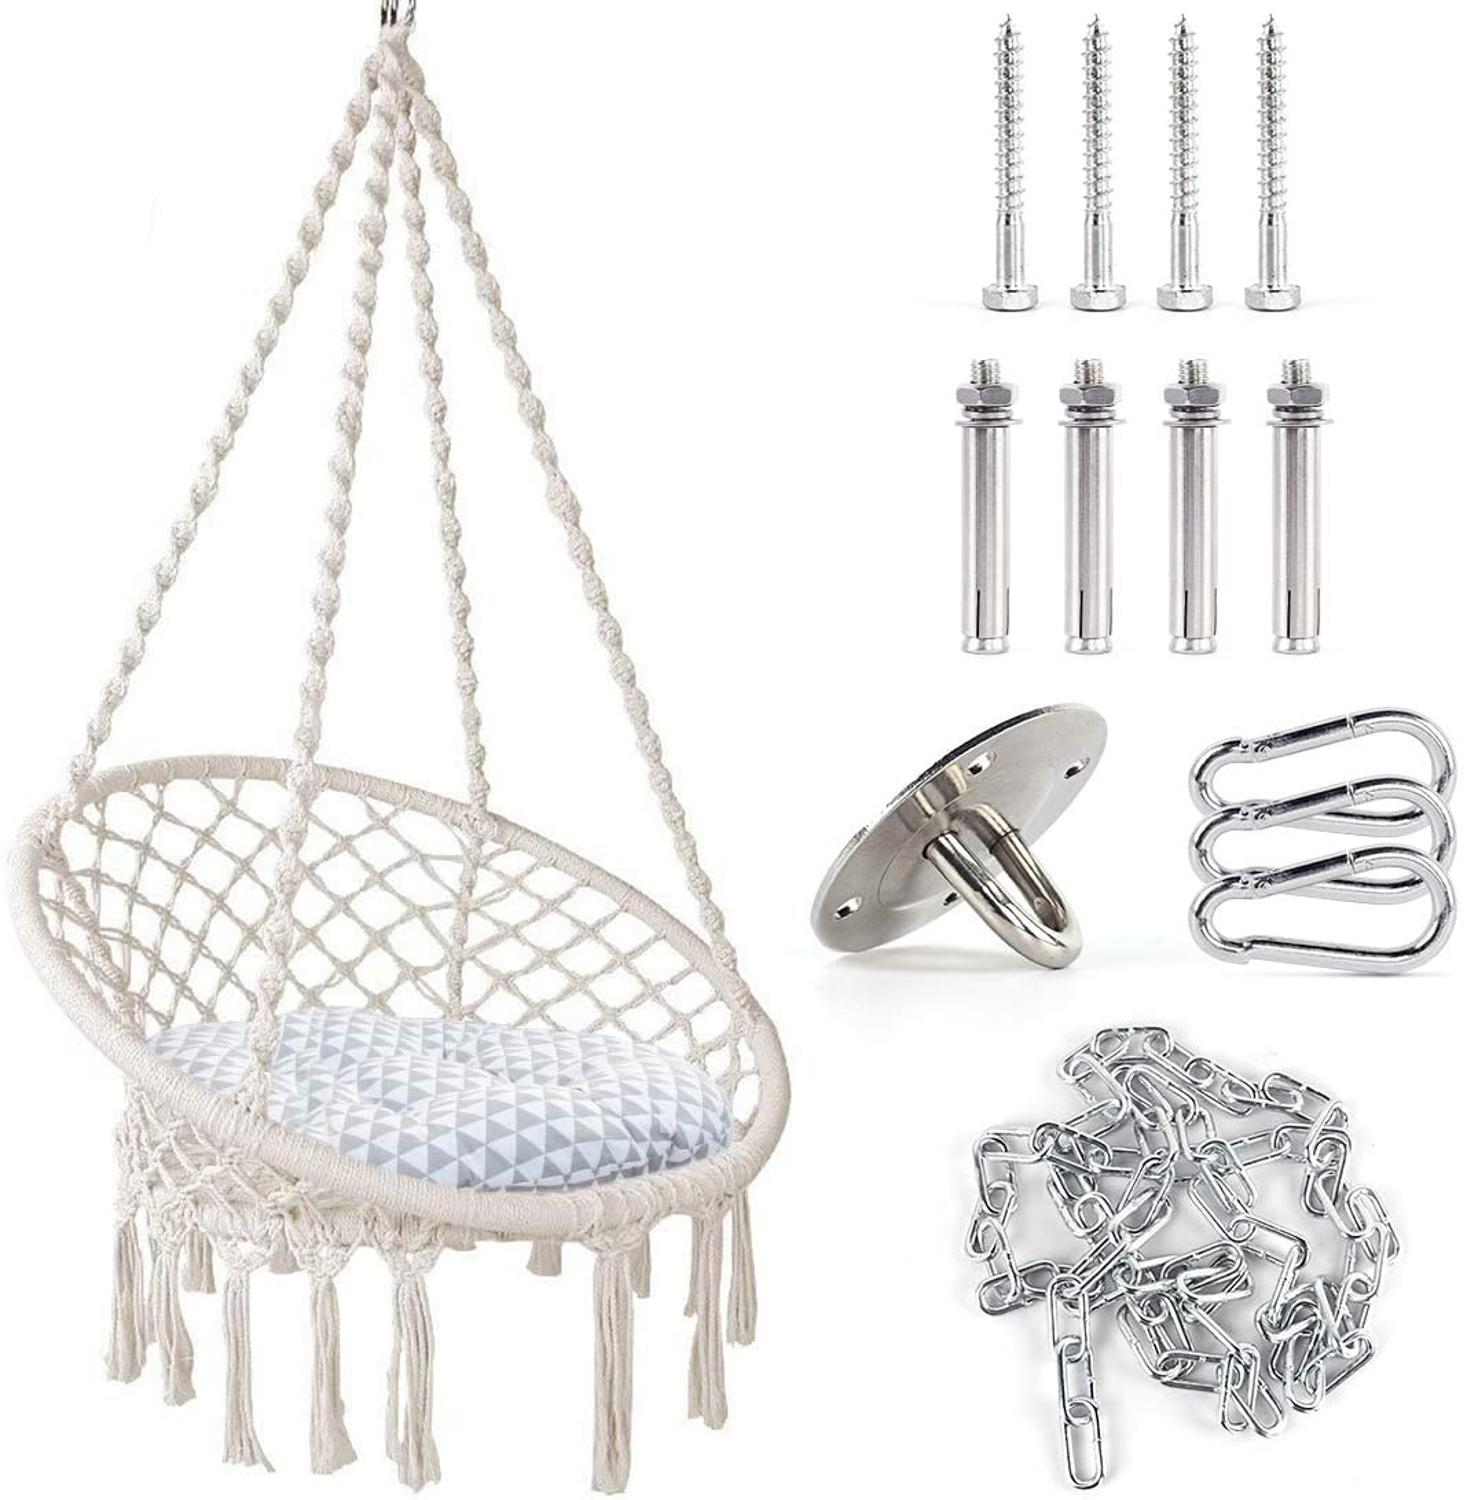 Hammock Swing Chair Macrame Hanging Chair, Boho Room Upholstery Cotton Hammock Chair,Suspension Hardware&MATS Are Included